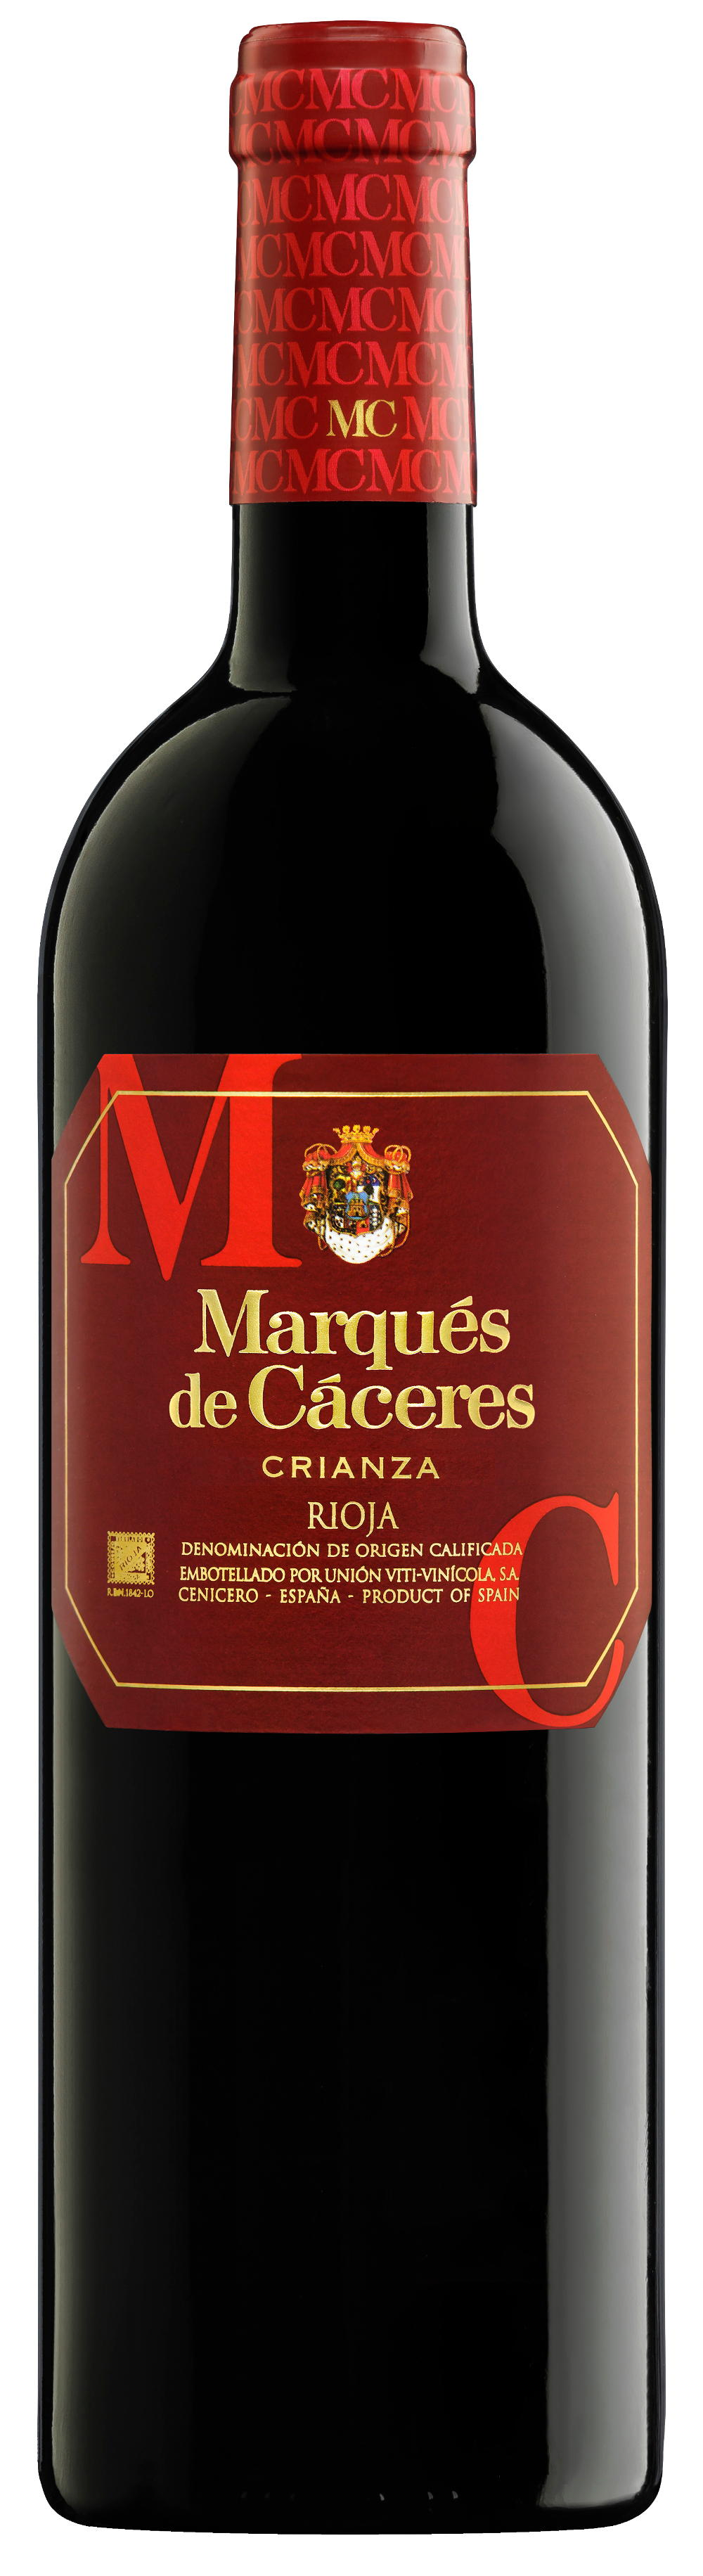 Marques De Caceres Crianza 2012 Red Wine Best Red Wine Spanish Red Wine